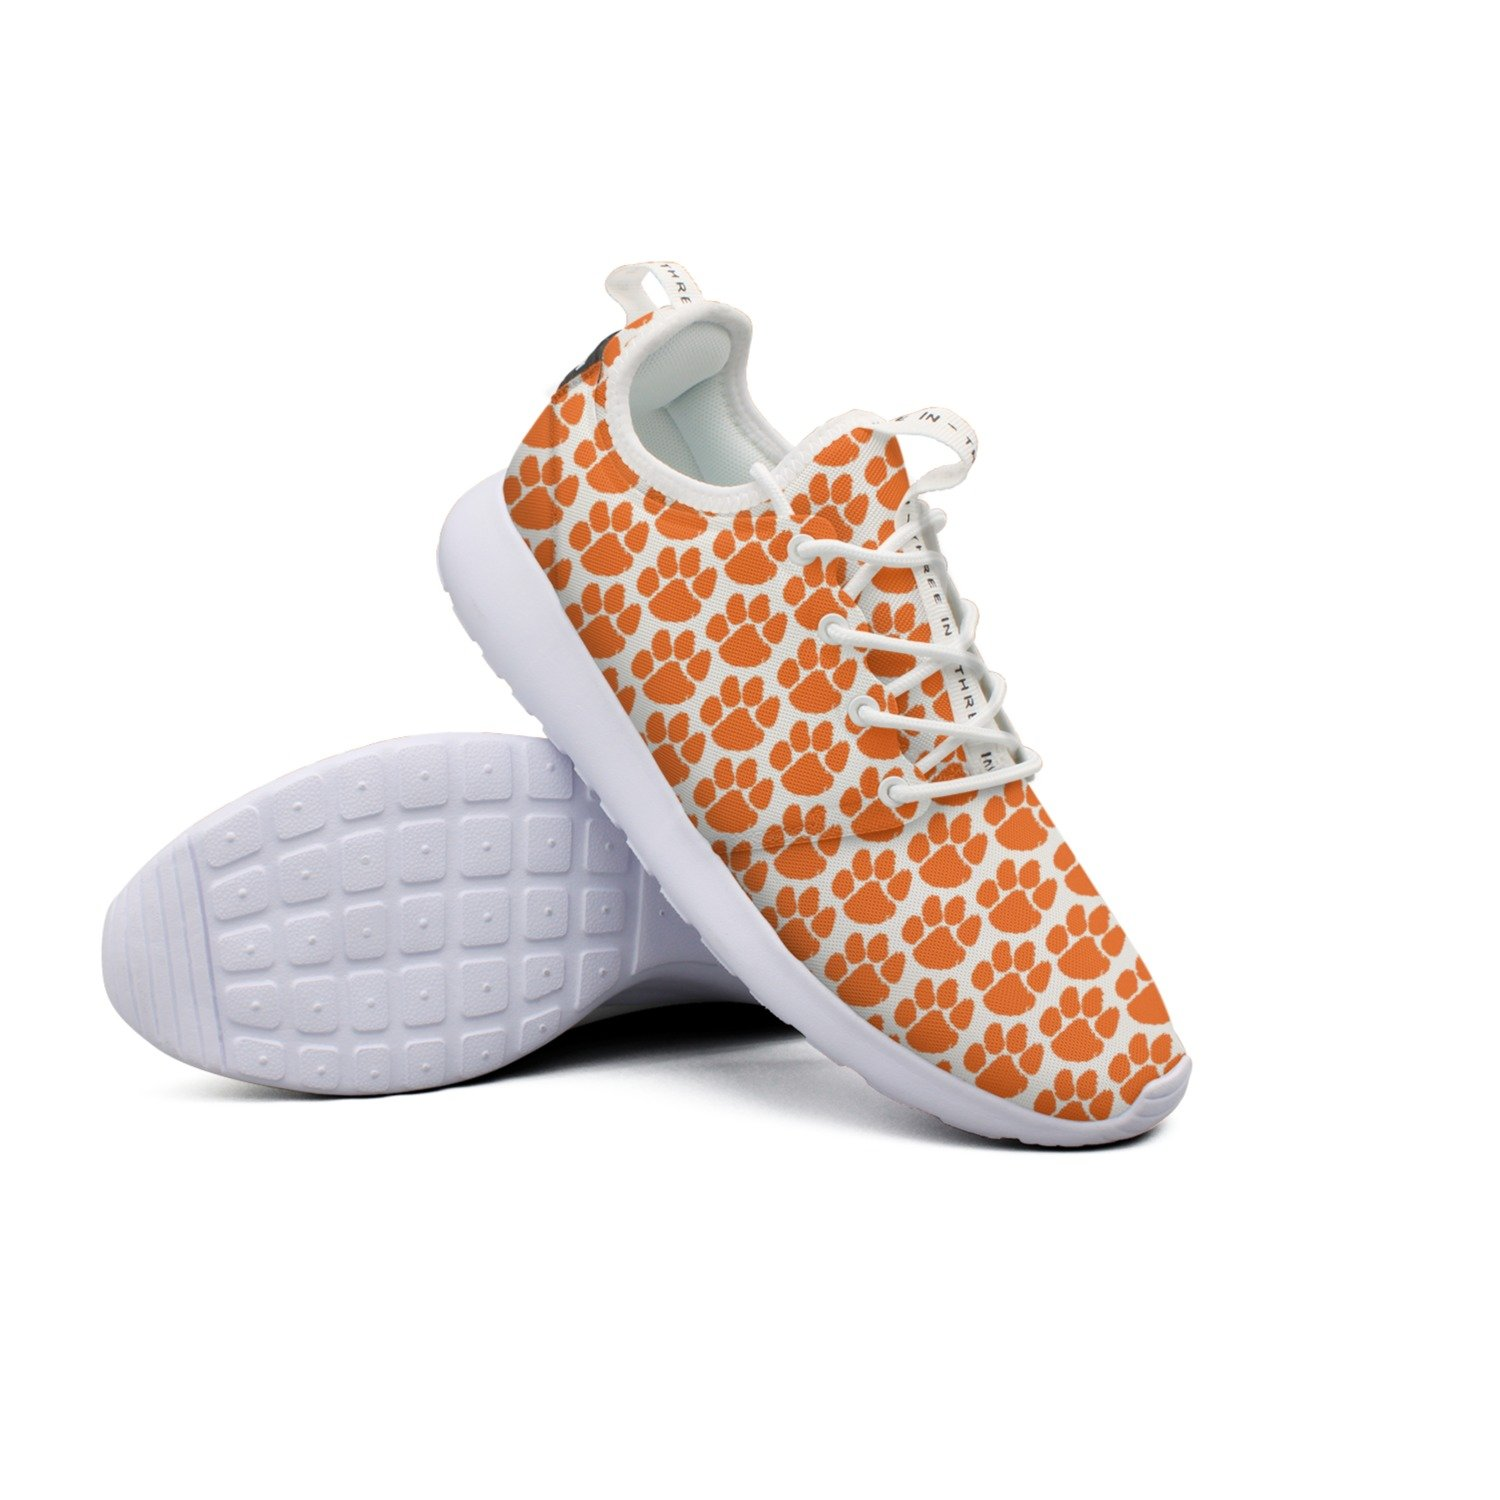 Large Paw Fabric Woman's Net Casual Running Shoes Unique Lovely